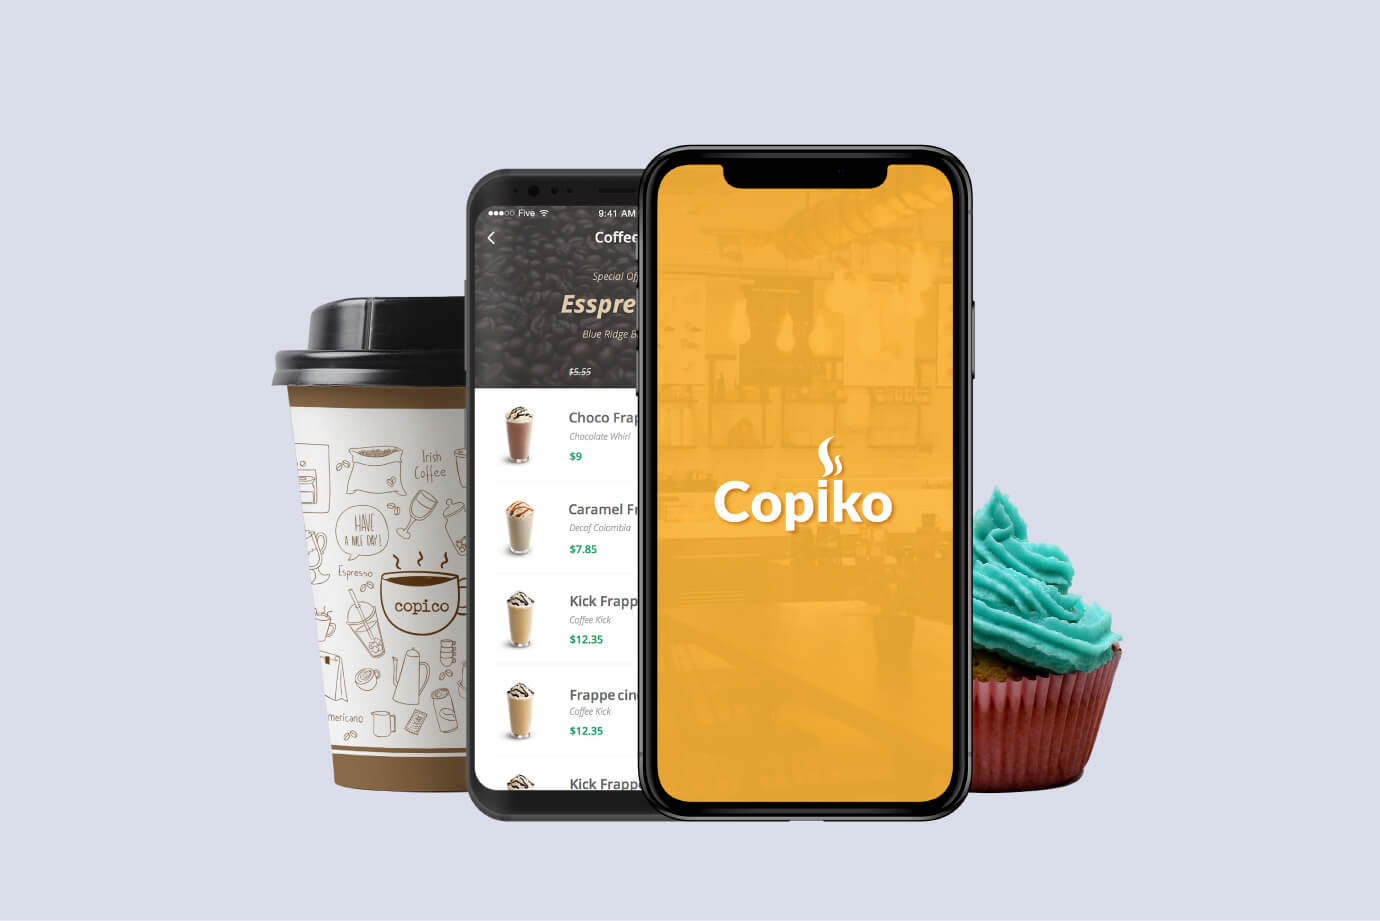 Copiko App Designed By Freelance Mobile App designer in Dubai Sajid Sulaiman